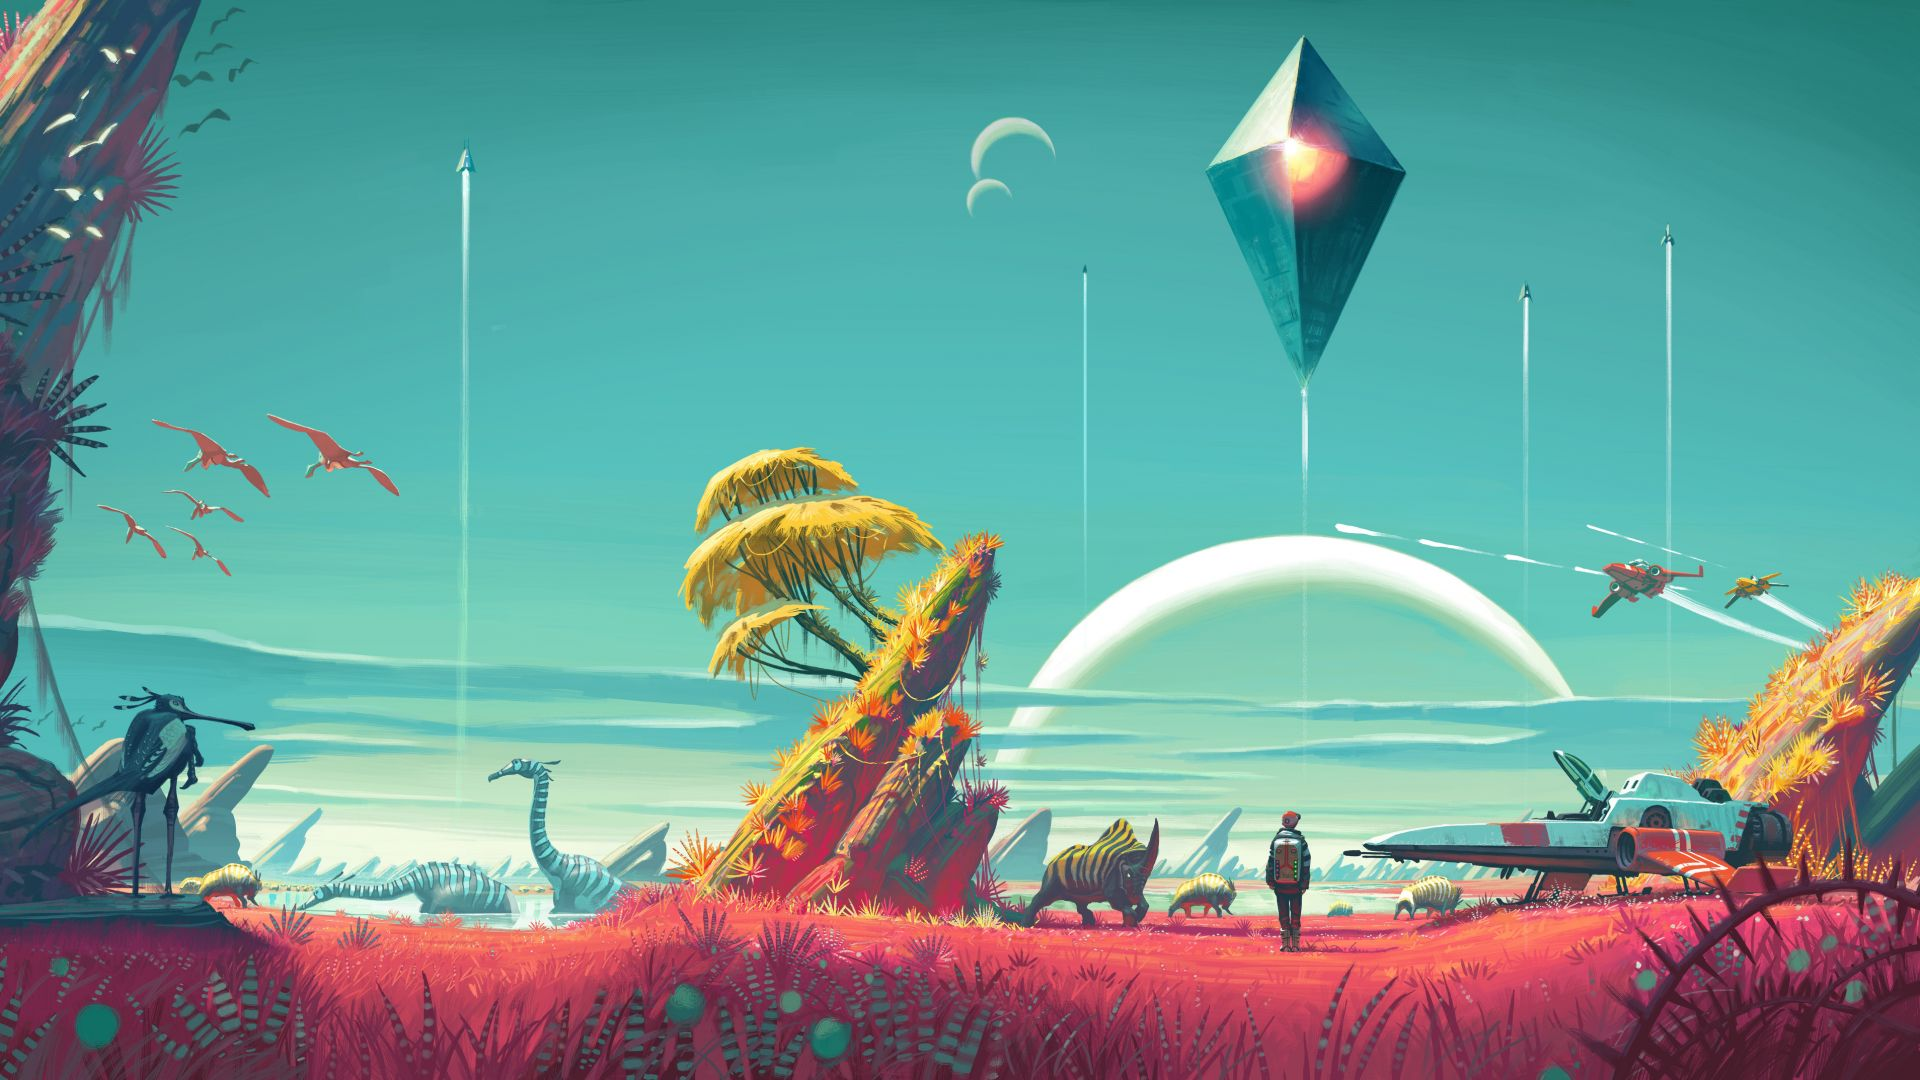 No Man's Sky, 4k, 5k wallpaper, Best Games 2015, game, sci-fi, space, fantasy, PC, PS4